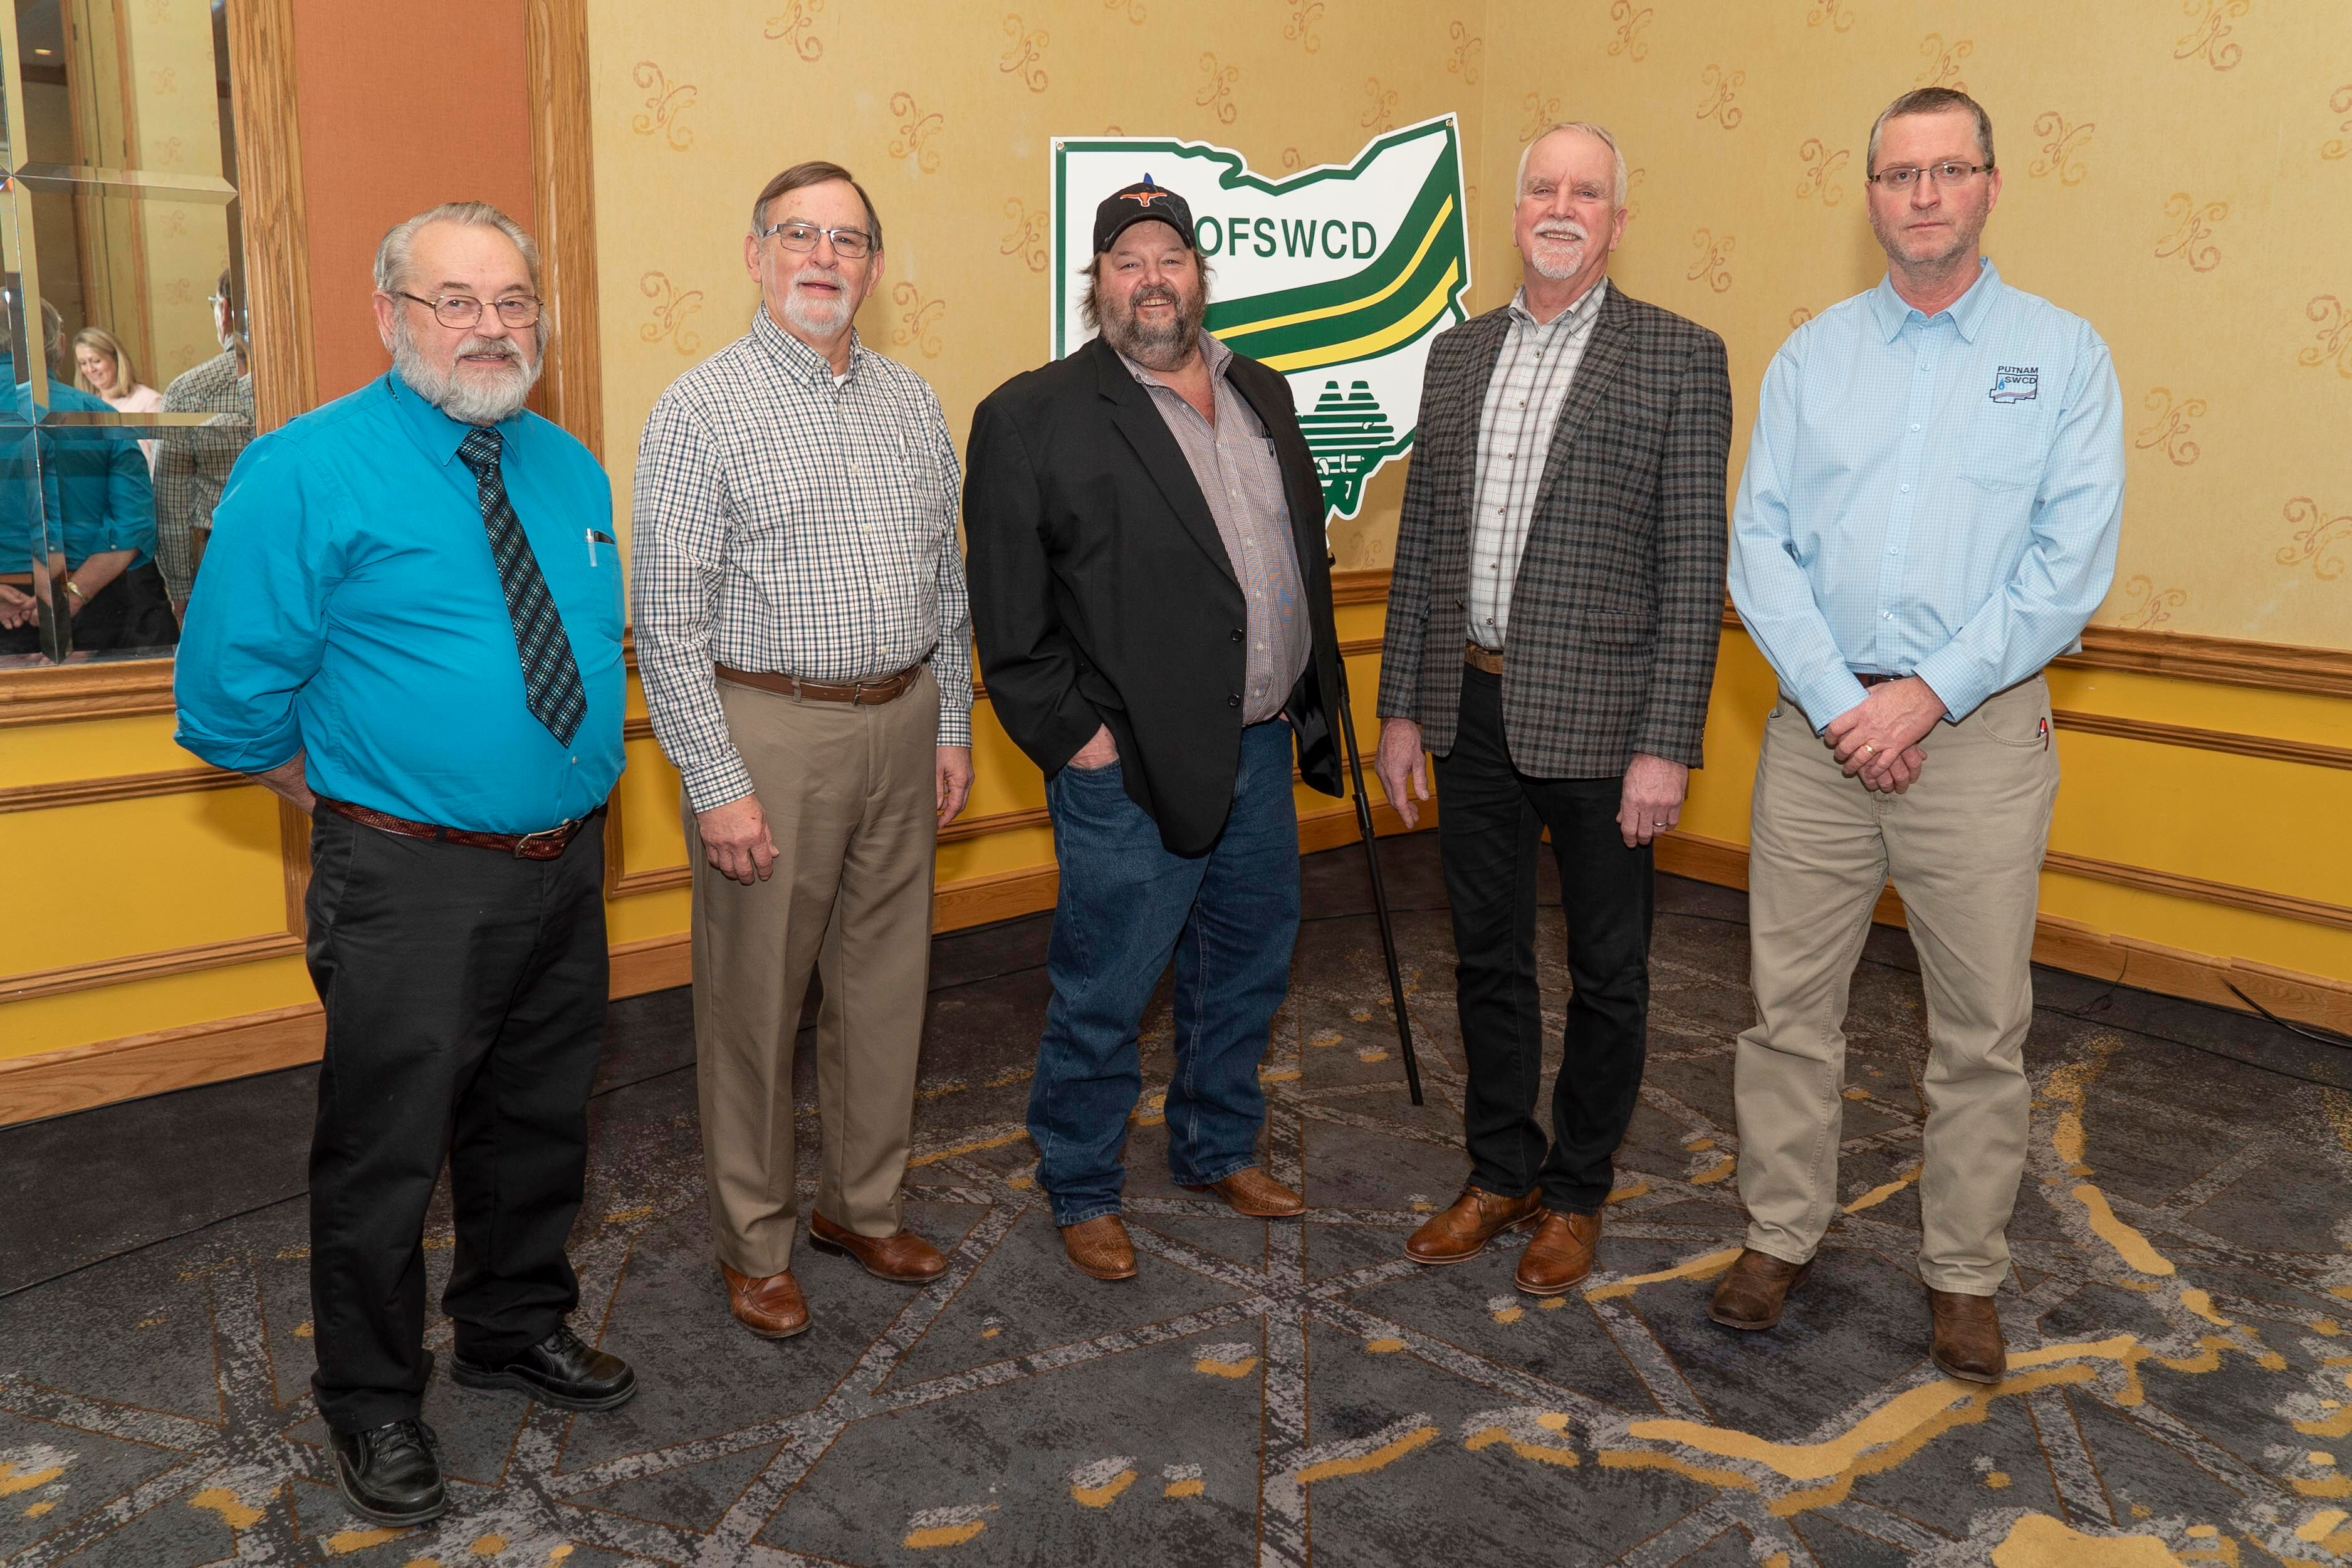 OFSWCD Officers Elected